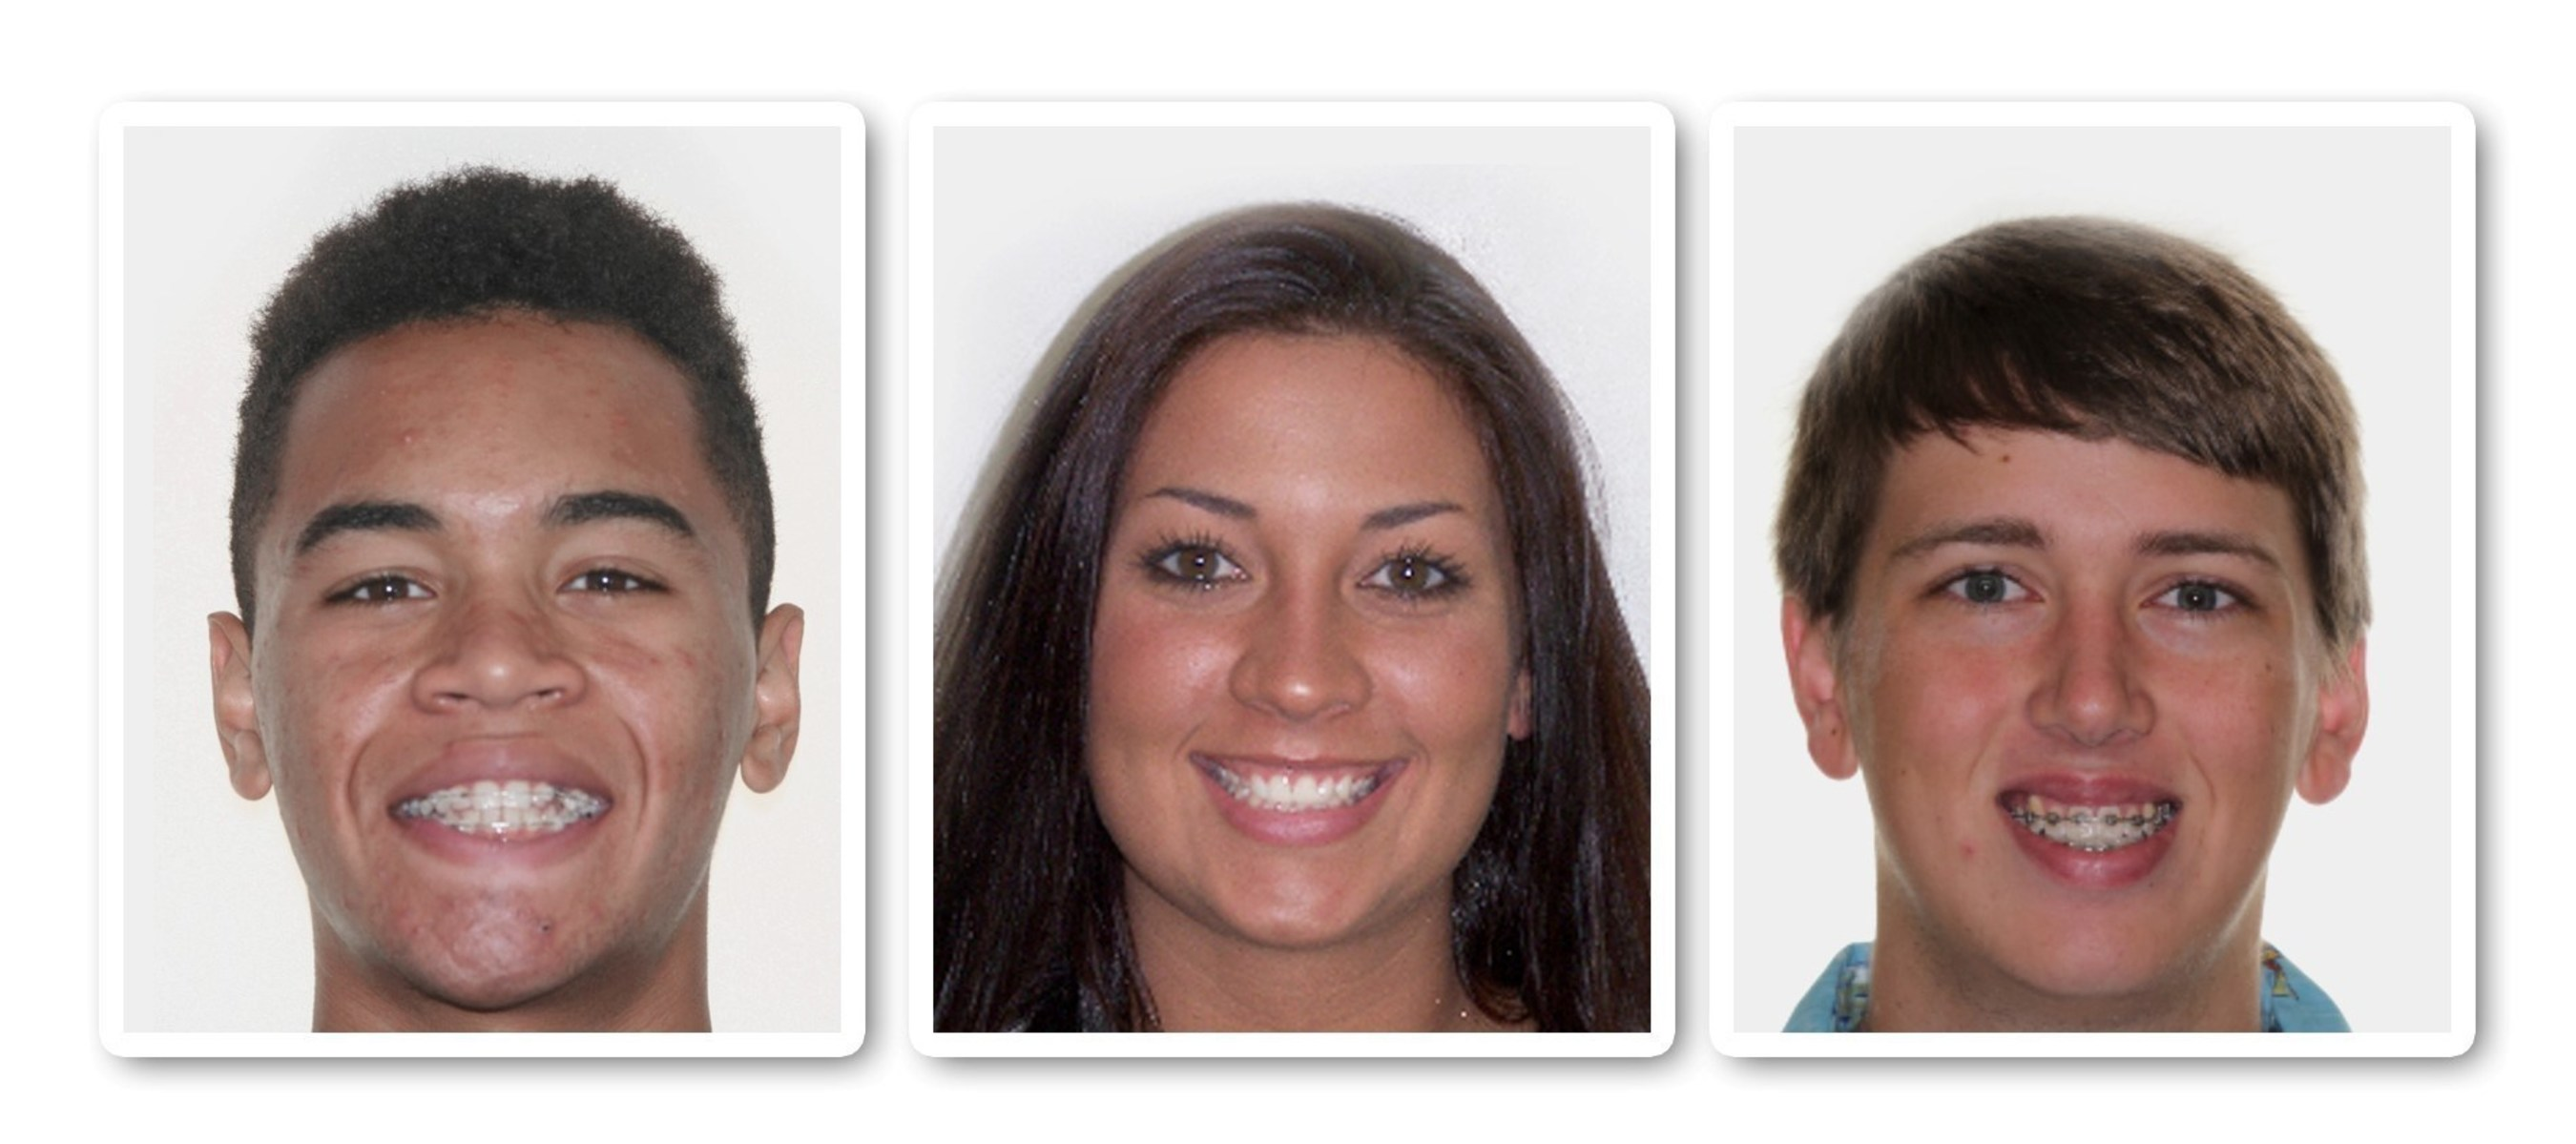 Orthodontic patients (from left to right) Rey Rivera, Tiffany Tapler and Chase Bethay choose AcceleDent to speed up their treatment. AcceleDent is an FDA-cleared, Class II medical device that speeds orthodontic tooth movement by as much as 50 percent.